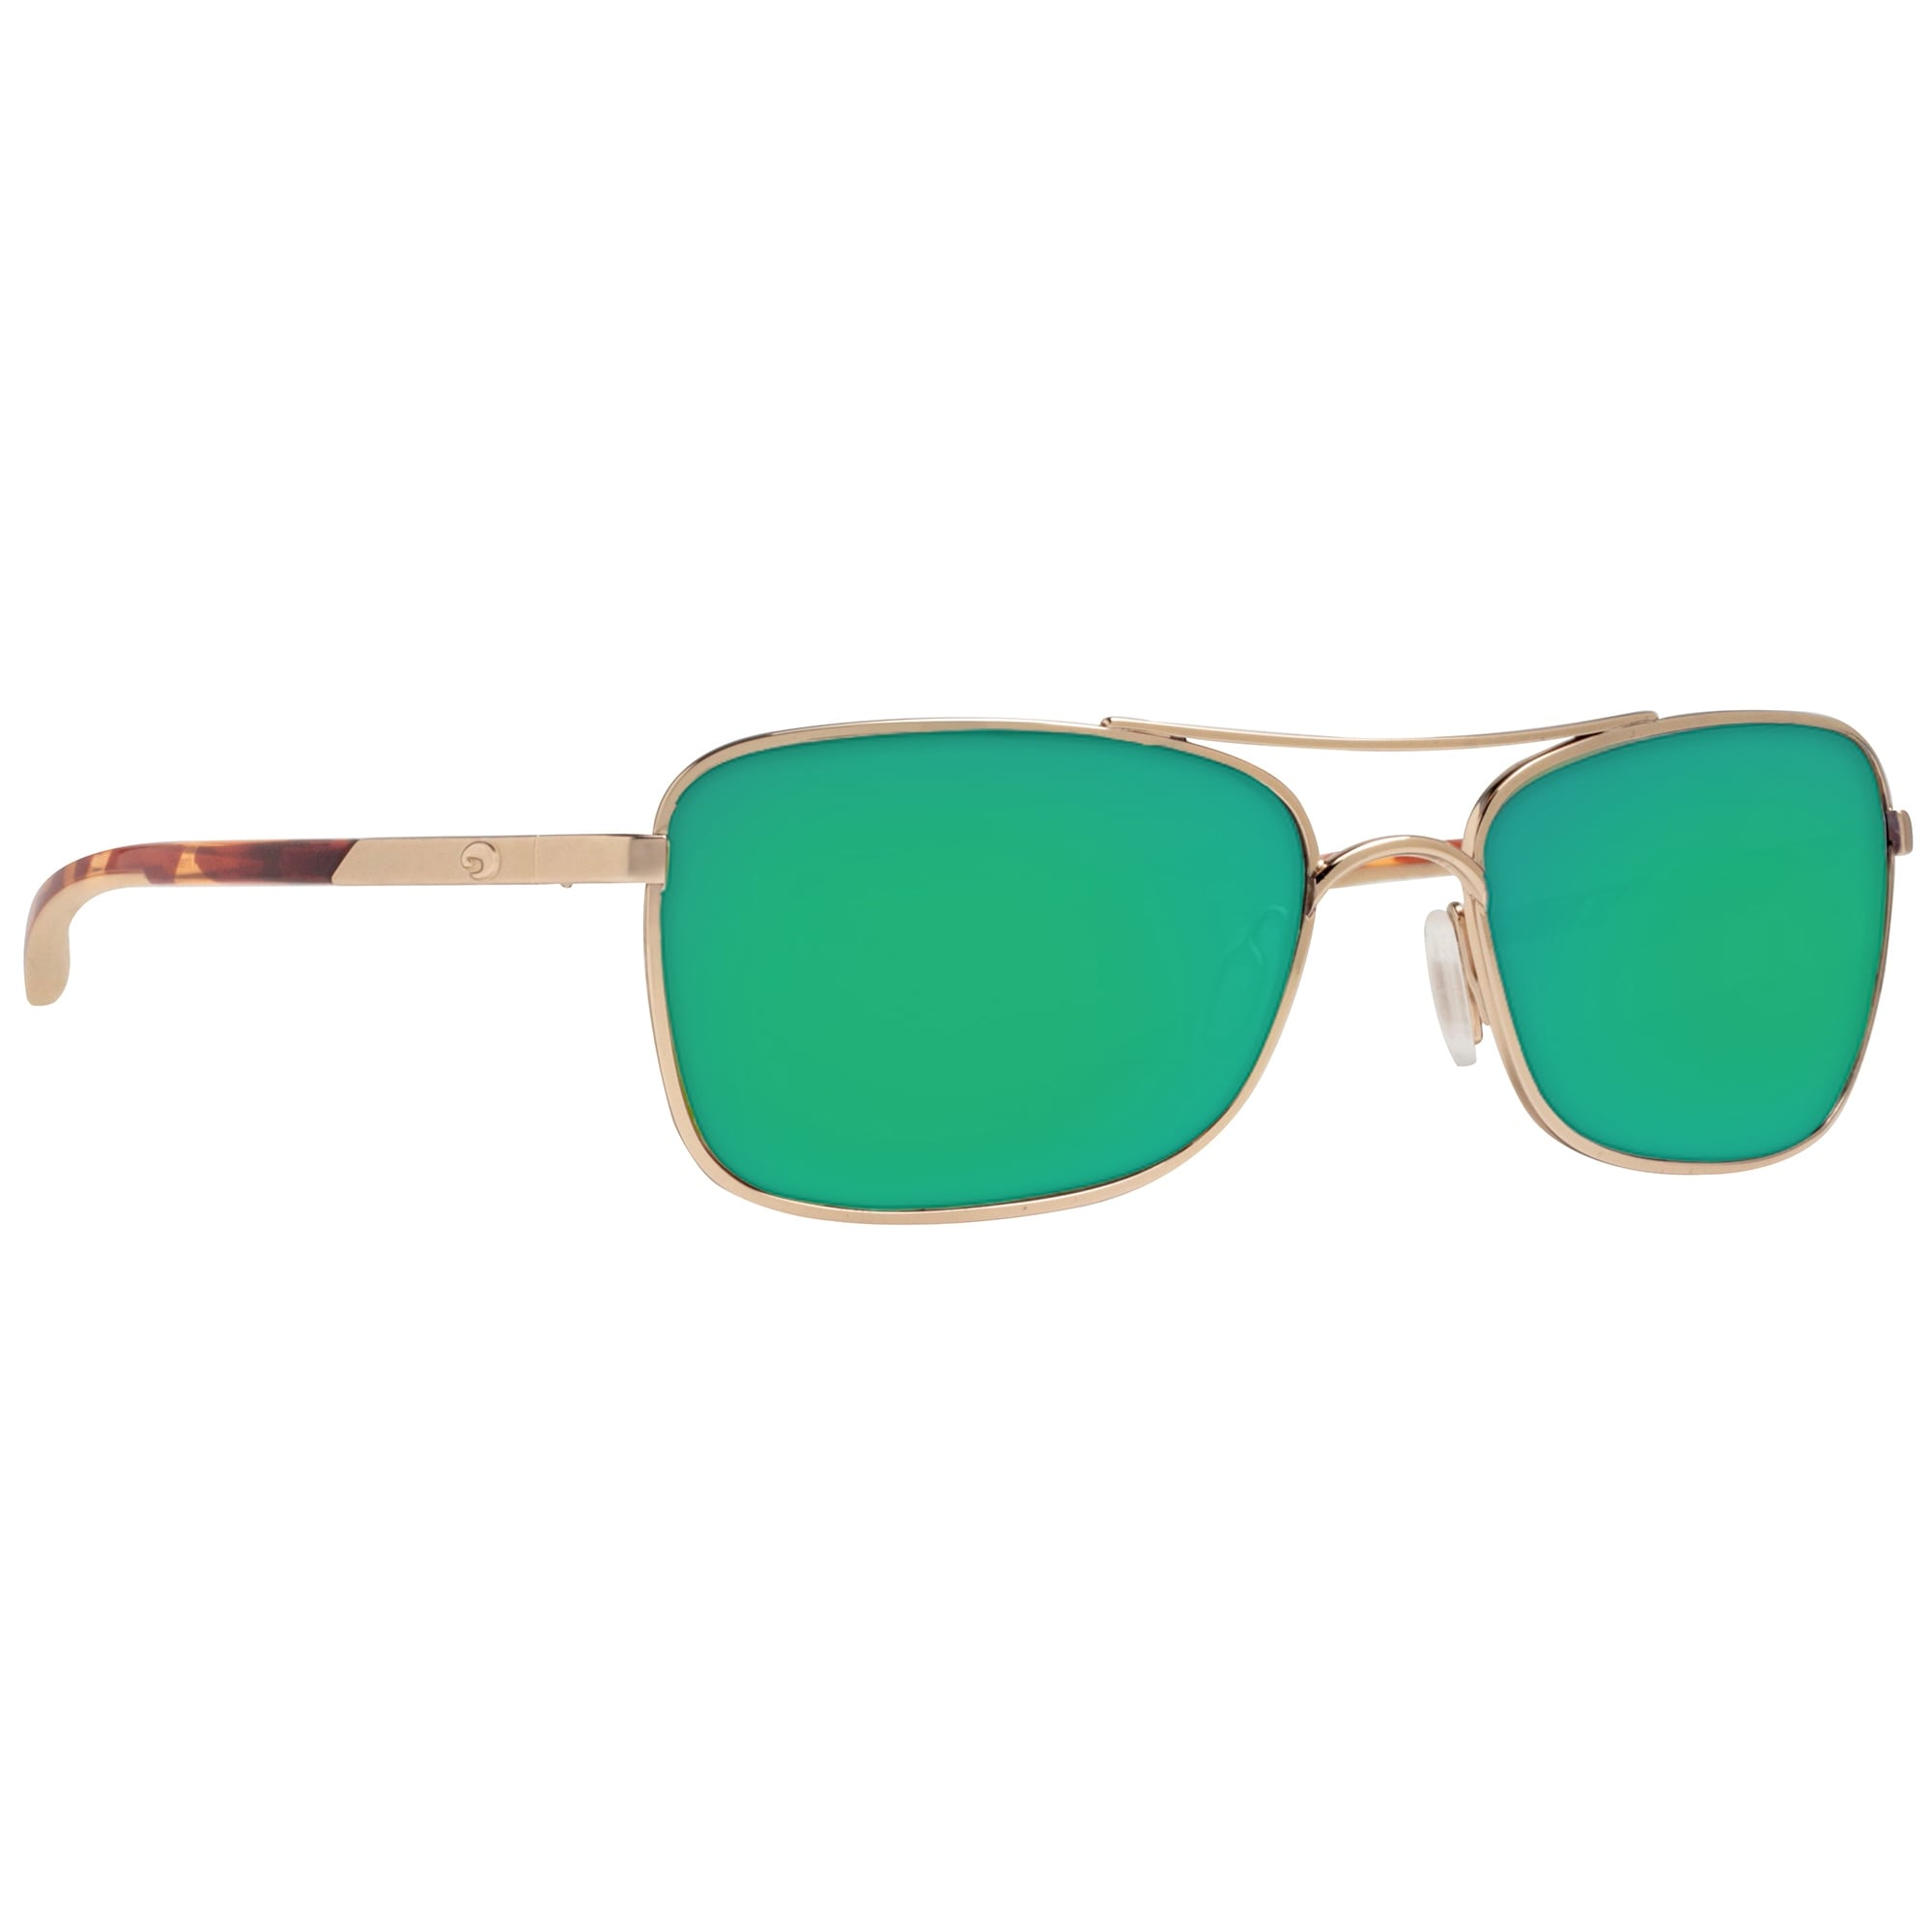 4b34bd0967 Shop Costa del Mar Palapa AP64OGMGLP Rose Gold Green Mirror 580G Polarized  Sunglasses - rose gold   havana brown - 57mm-18mm-130mm - Free Shipping  Today ...